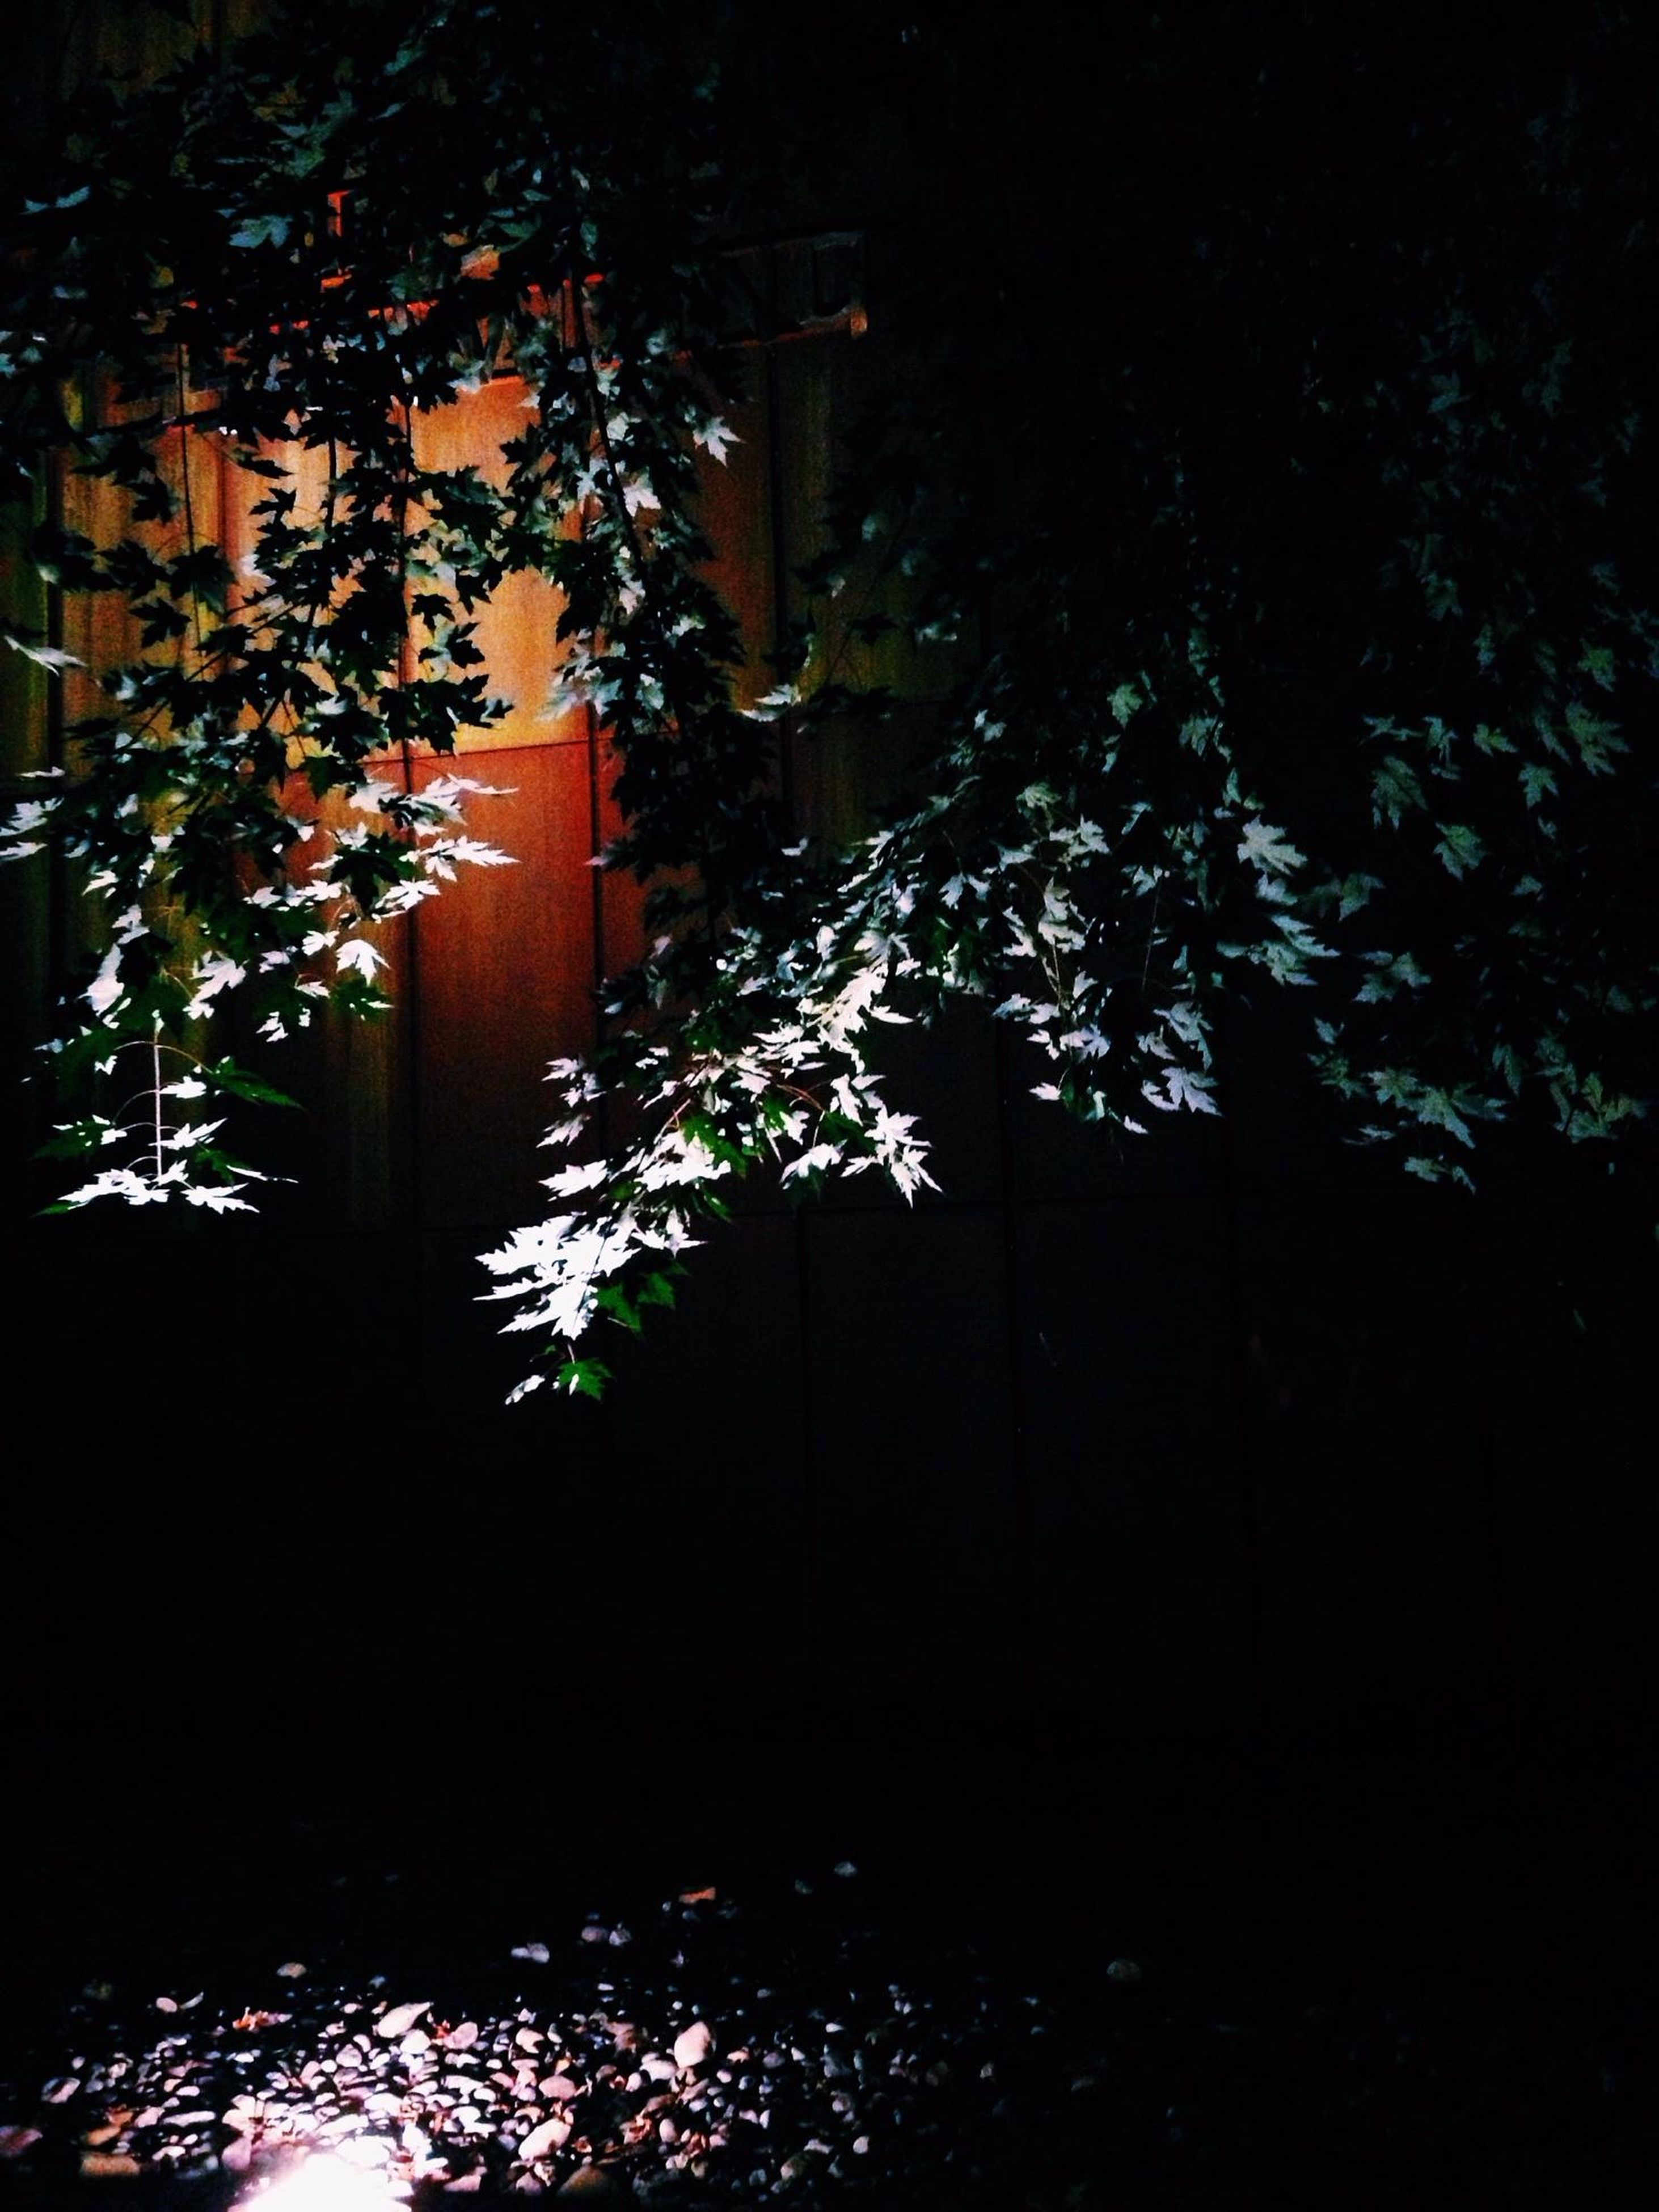 night, illuminated, growth, water, flower, plant, tree, built structure, dark, nature, building exterior, architecture, lighting equipment, reflection, no people, outdoors, beauty in nature, potted plant, house, light - natural phenomenon